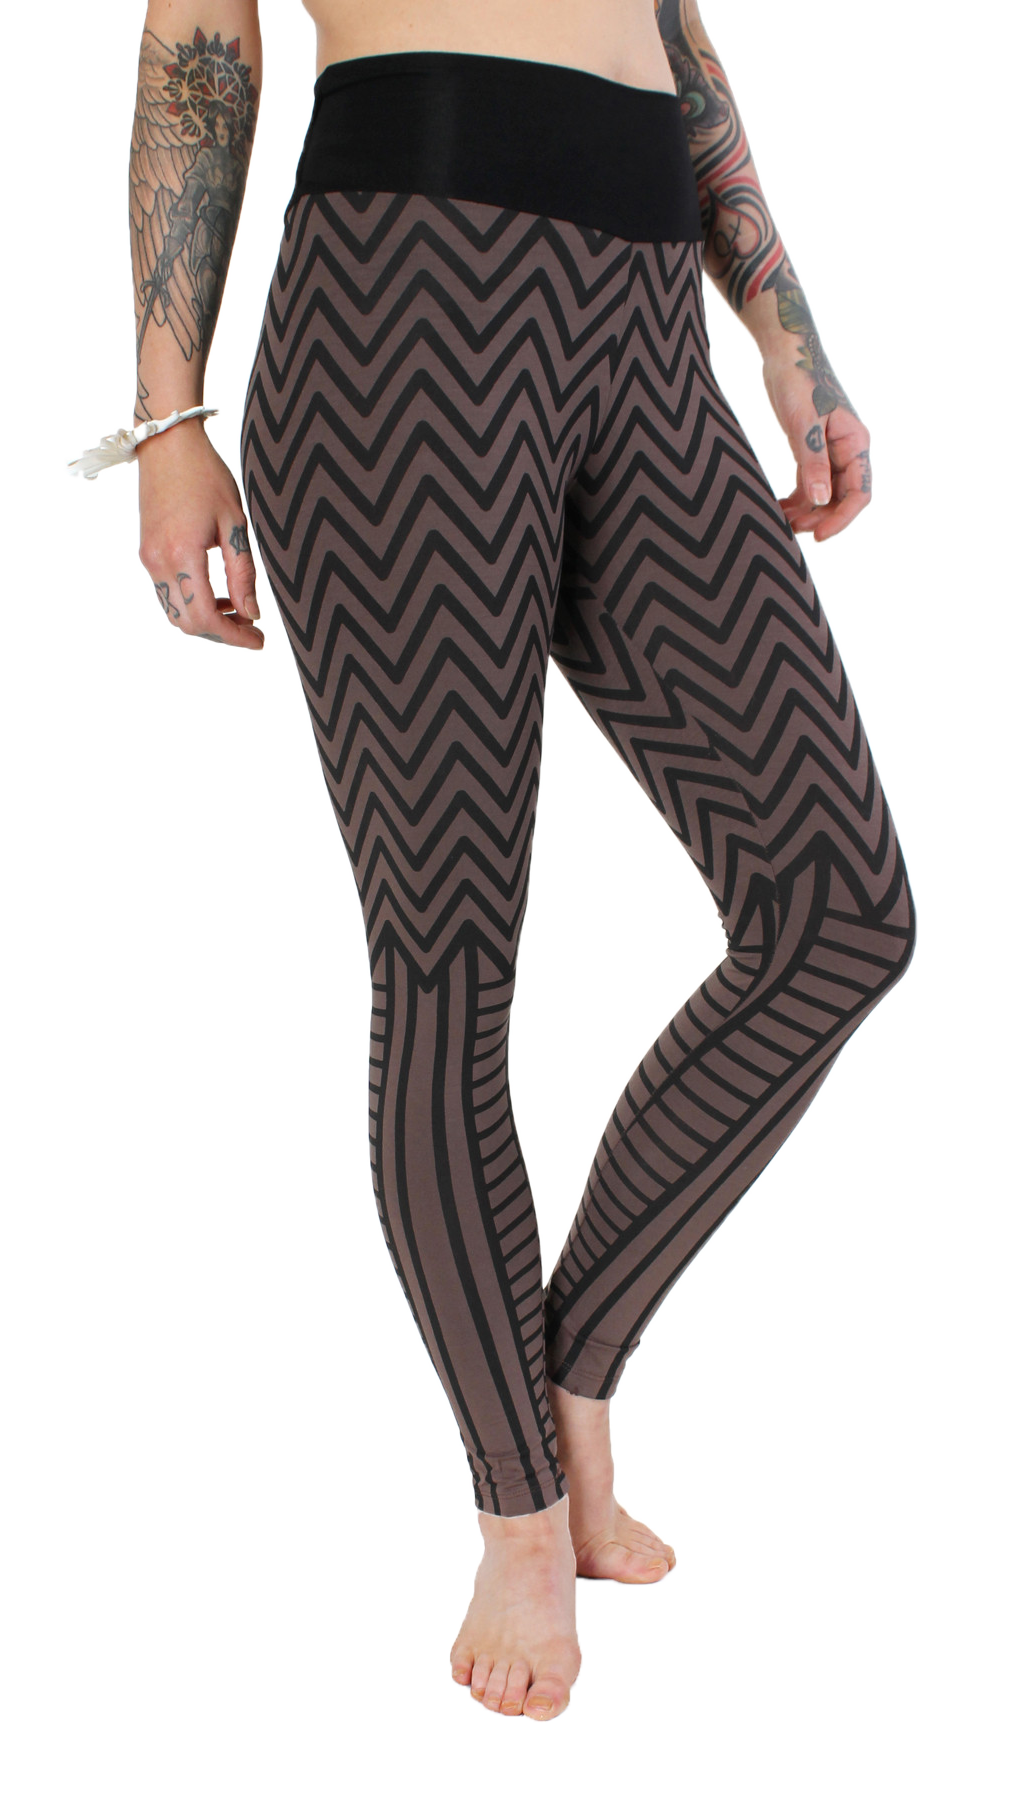 Kayo Chevron Leggings - Funk & Flash